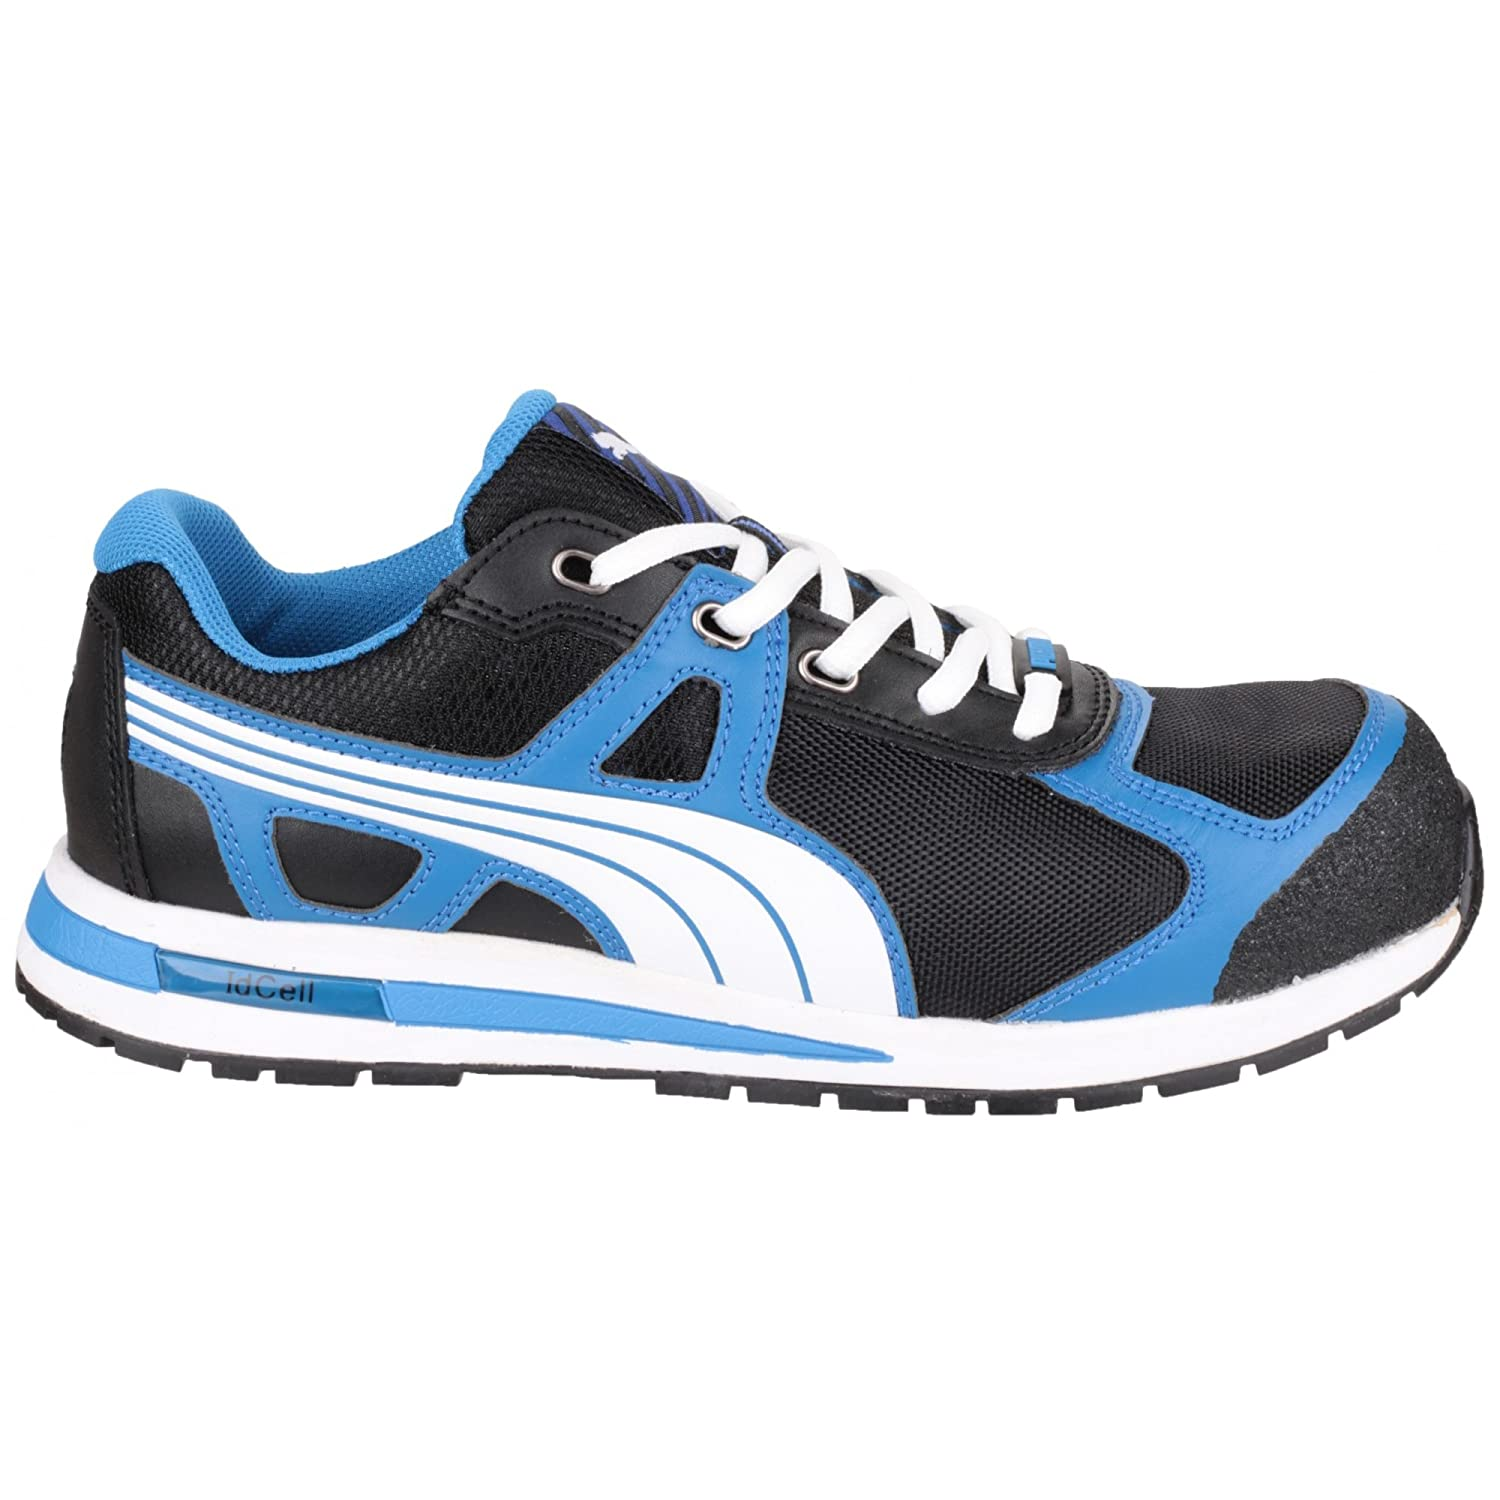 Puma Safety Aerial Low - Baskets de sécurité - Homme Puma Safety Footwear